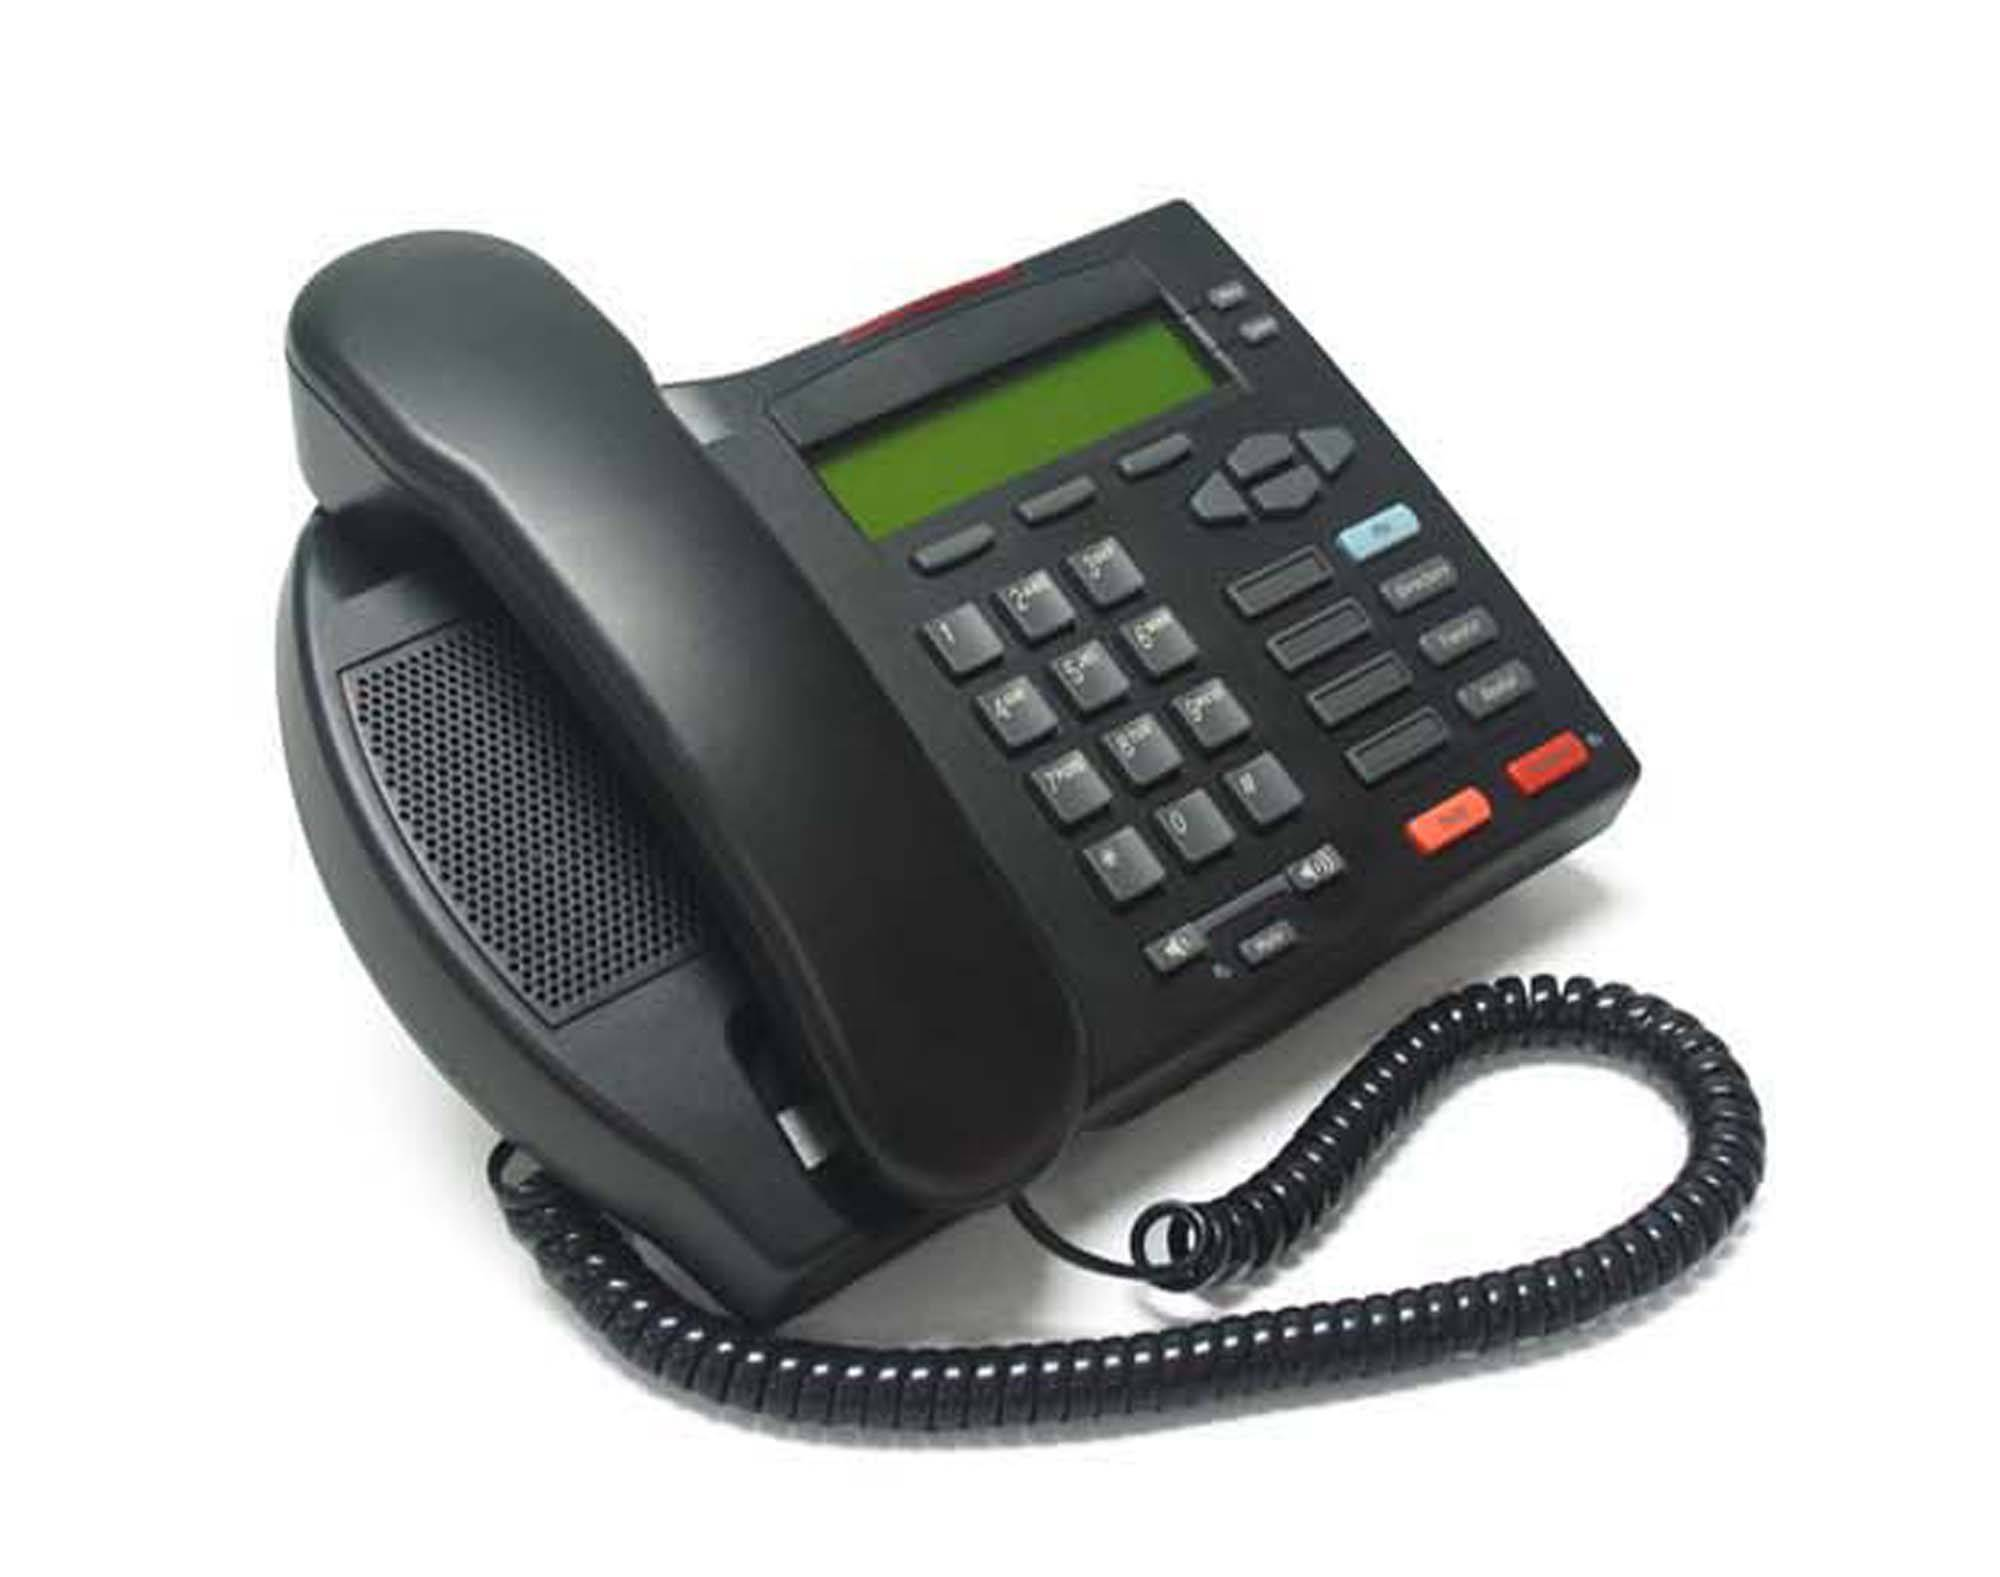 Provide Clear Timbre, Rich Function VoIP Phone FV6050